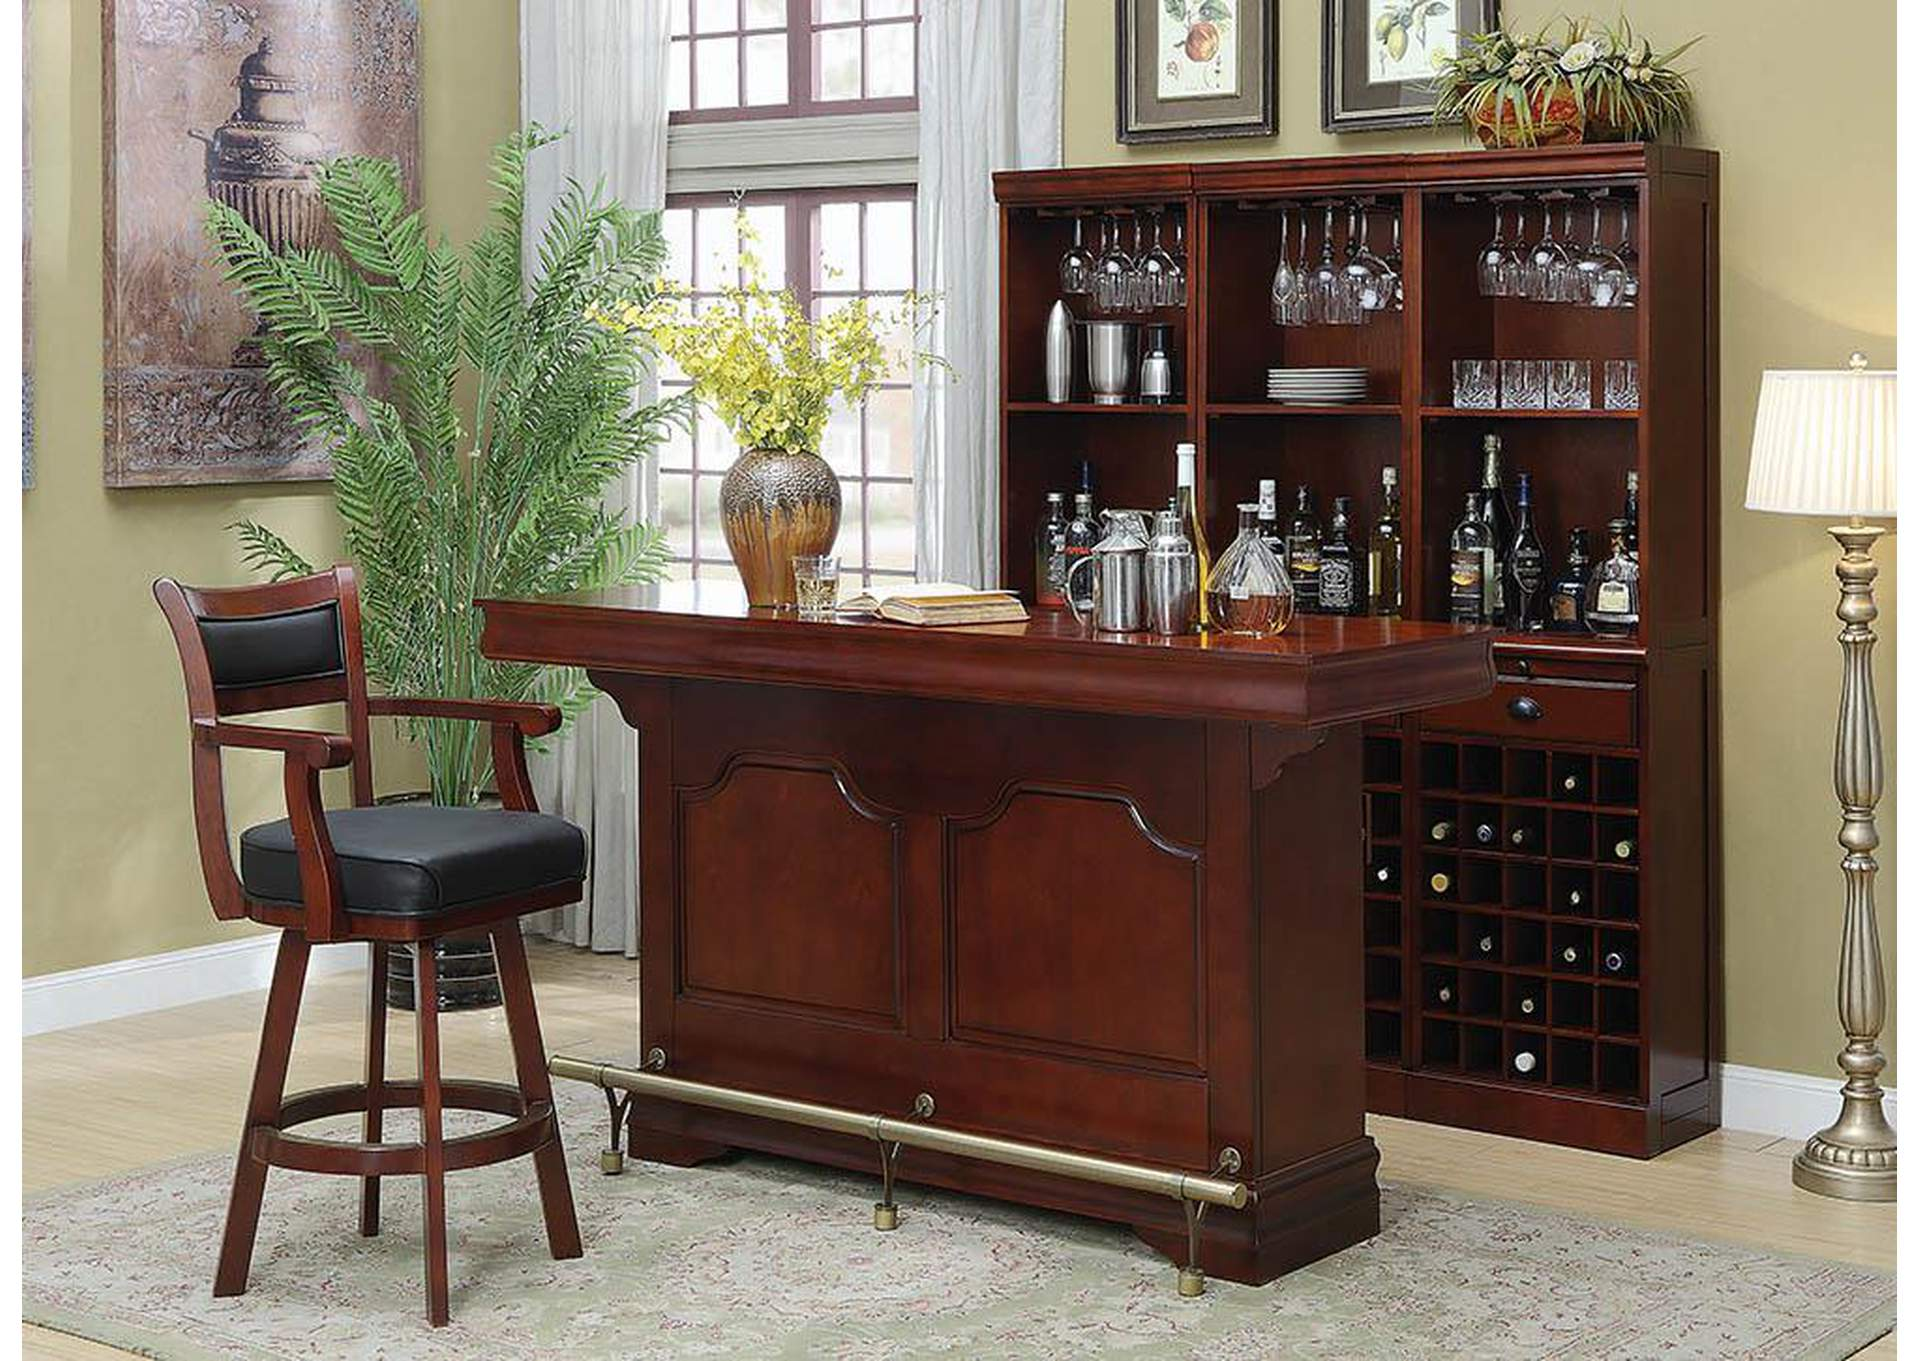 Bar Unit w/Bar Stool & Wine Wall,Coaster Furniture